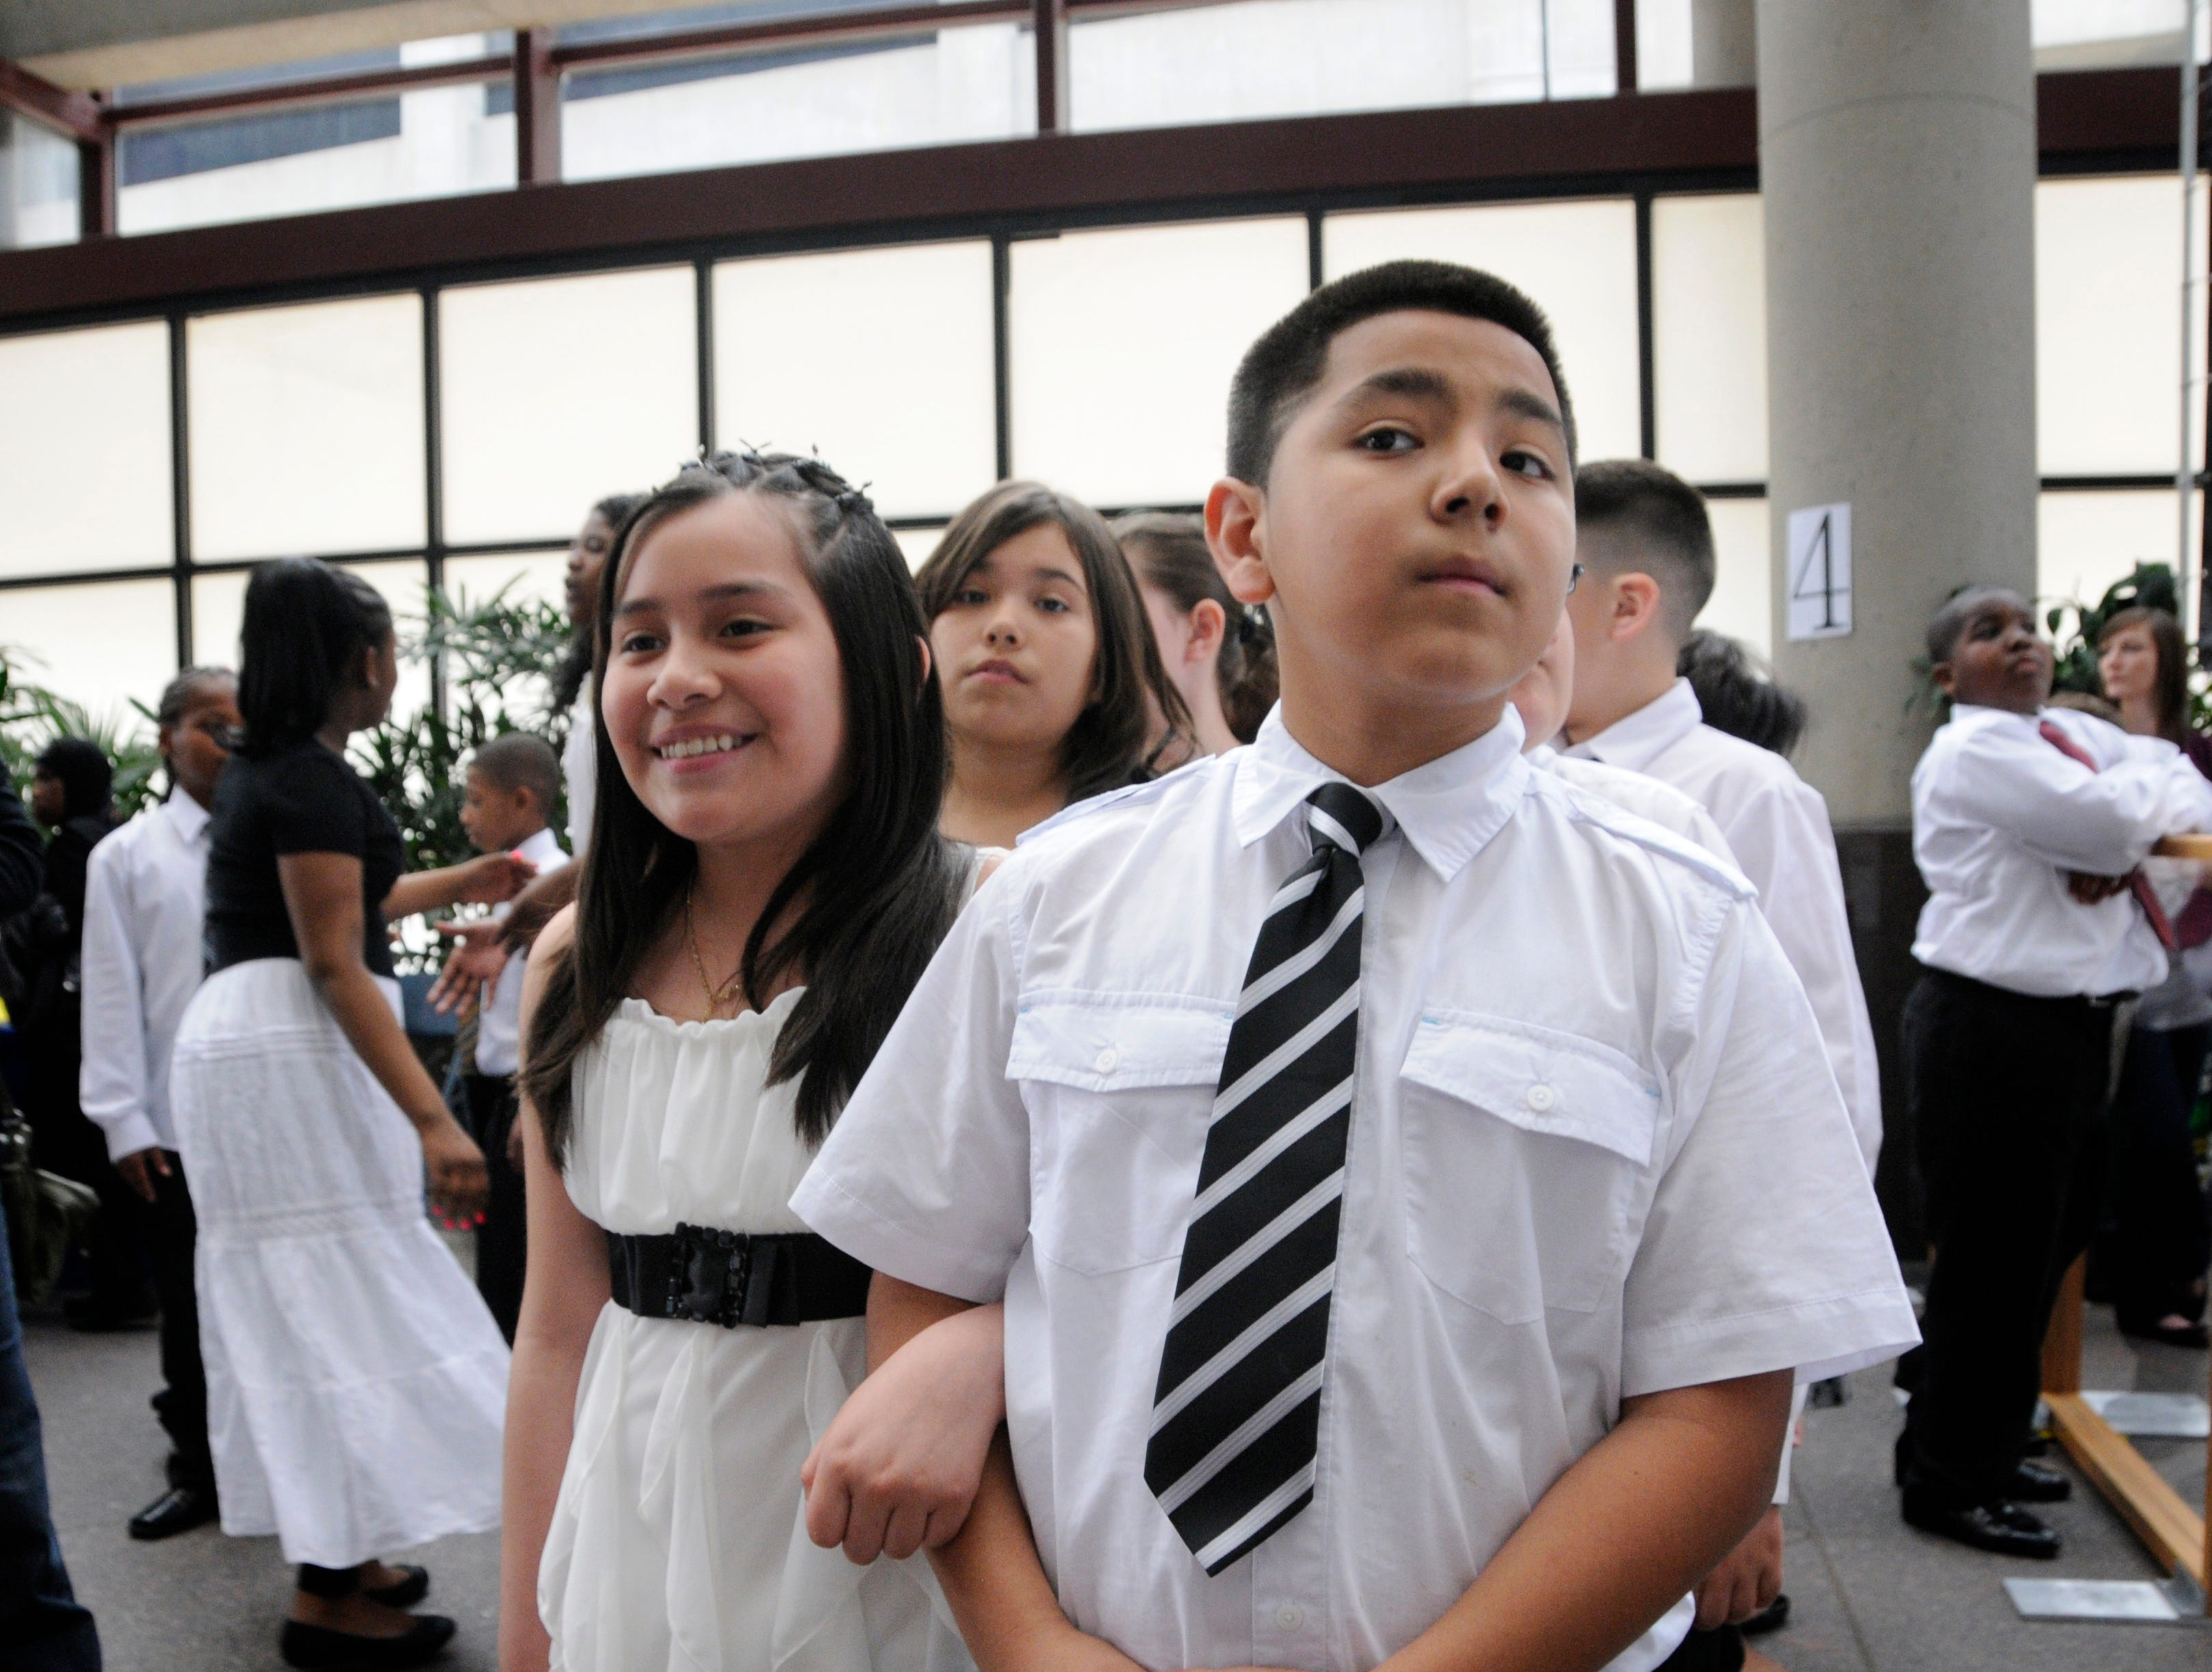 2012: Miriam Jargas and Miguel Quintana, both fifth graders from Doerfler School in Milwaukee, wait in line to go on the floor during the Danceworks Mad Hot Ballroom.